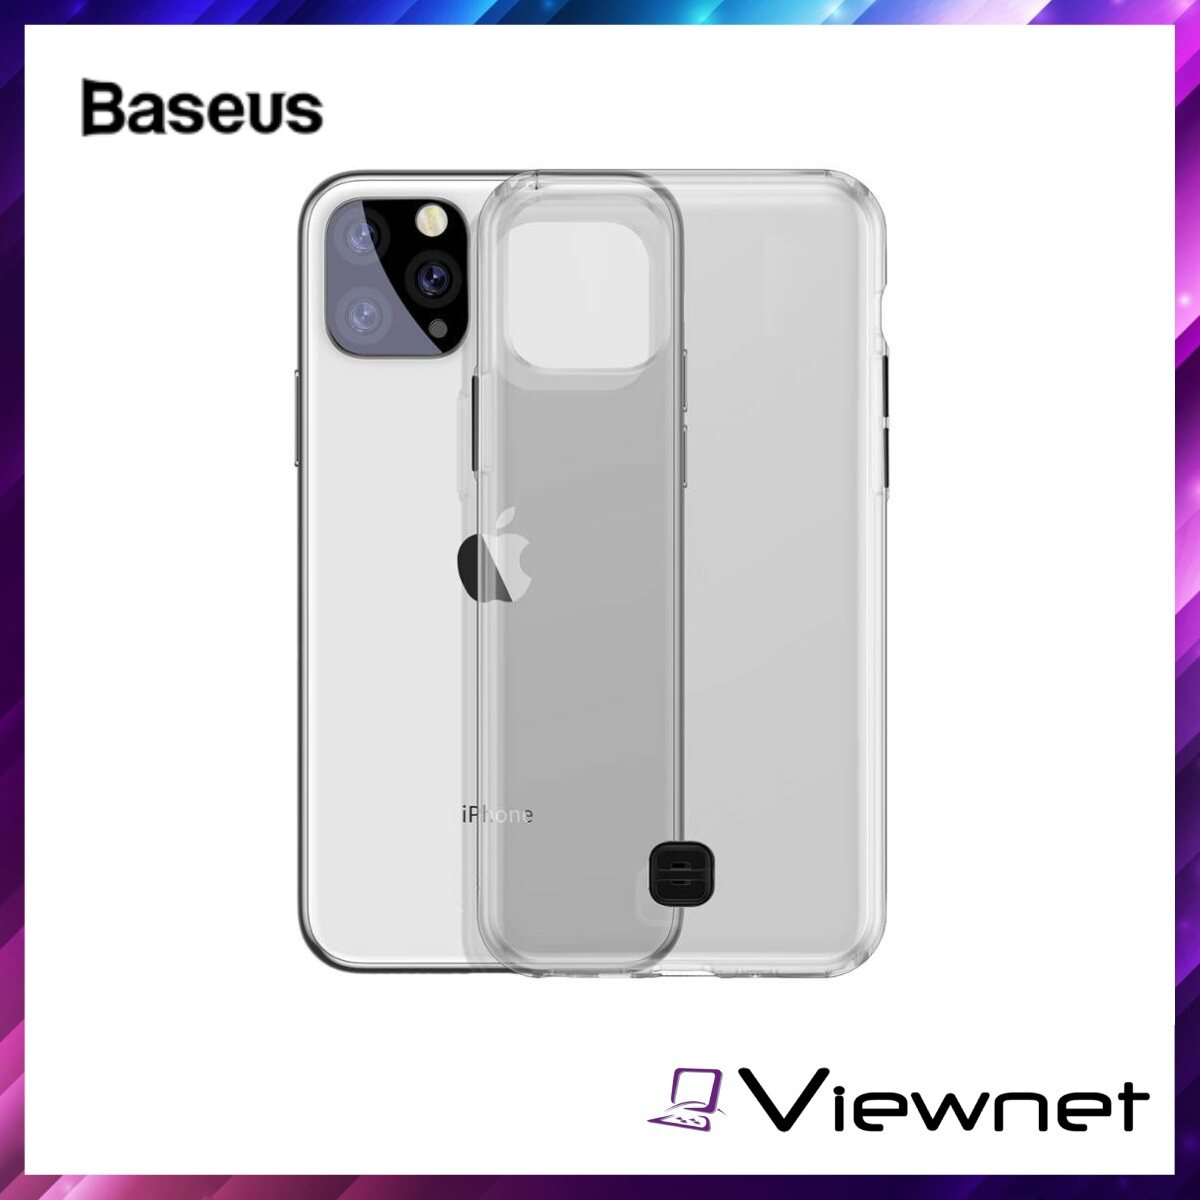 Baseus Transparent Key Phone Case For iPhone 11 Pro 5.8inch, TPU Material, Easy-to-carry Wrist Strap, Shockproof, Impact Resistance, Transparent / Transparent Black